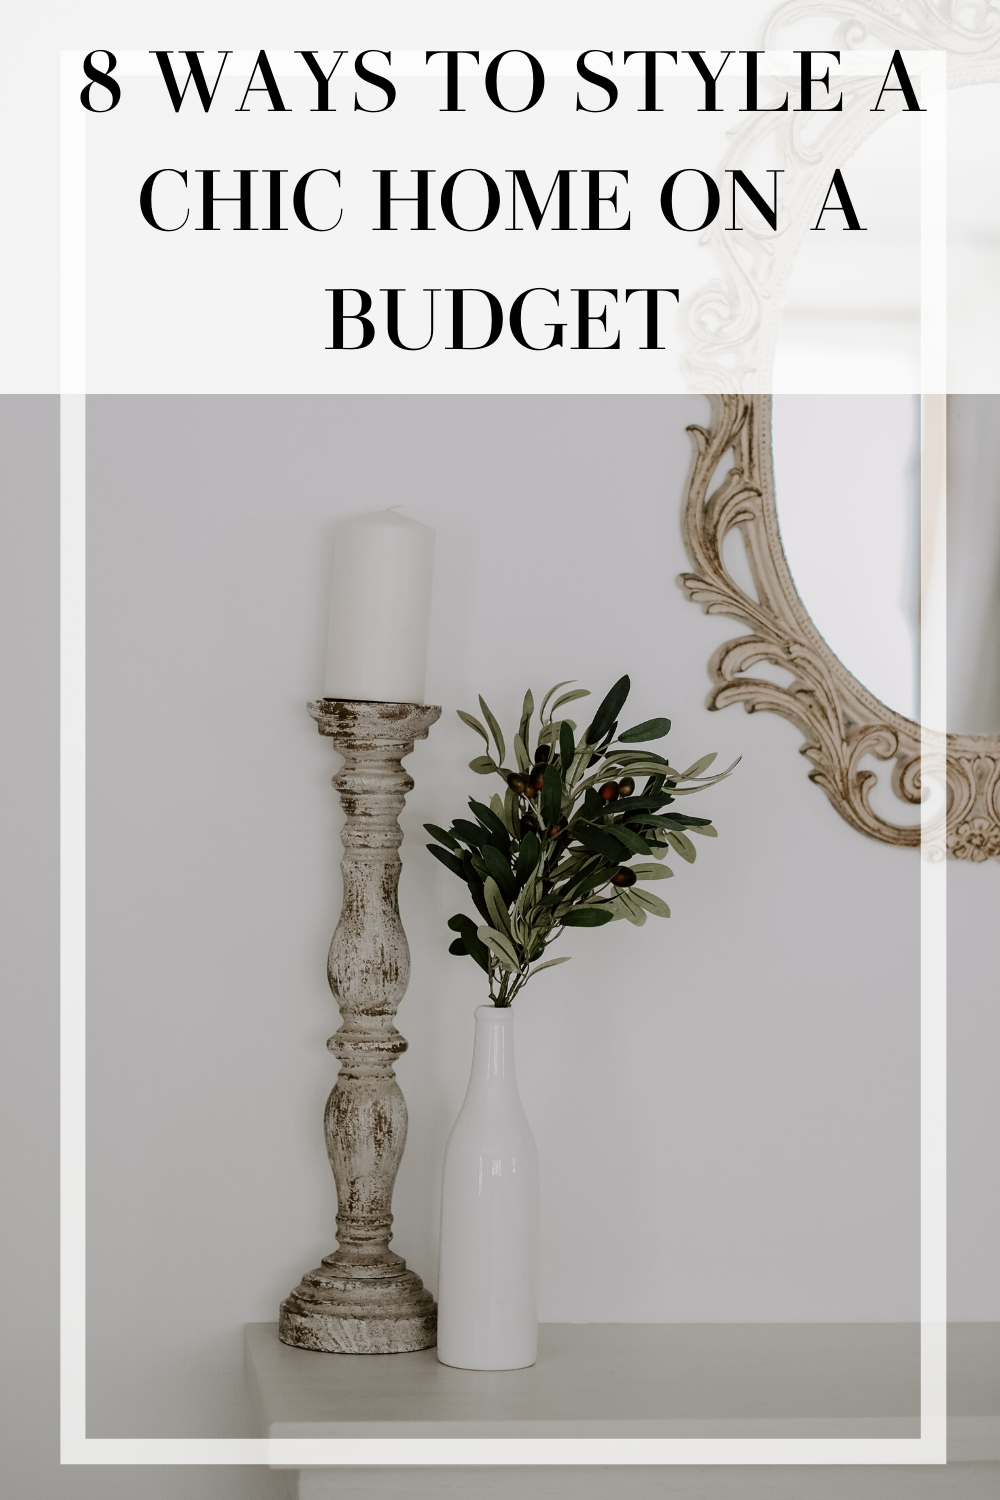 styling your home on a budget